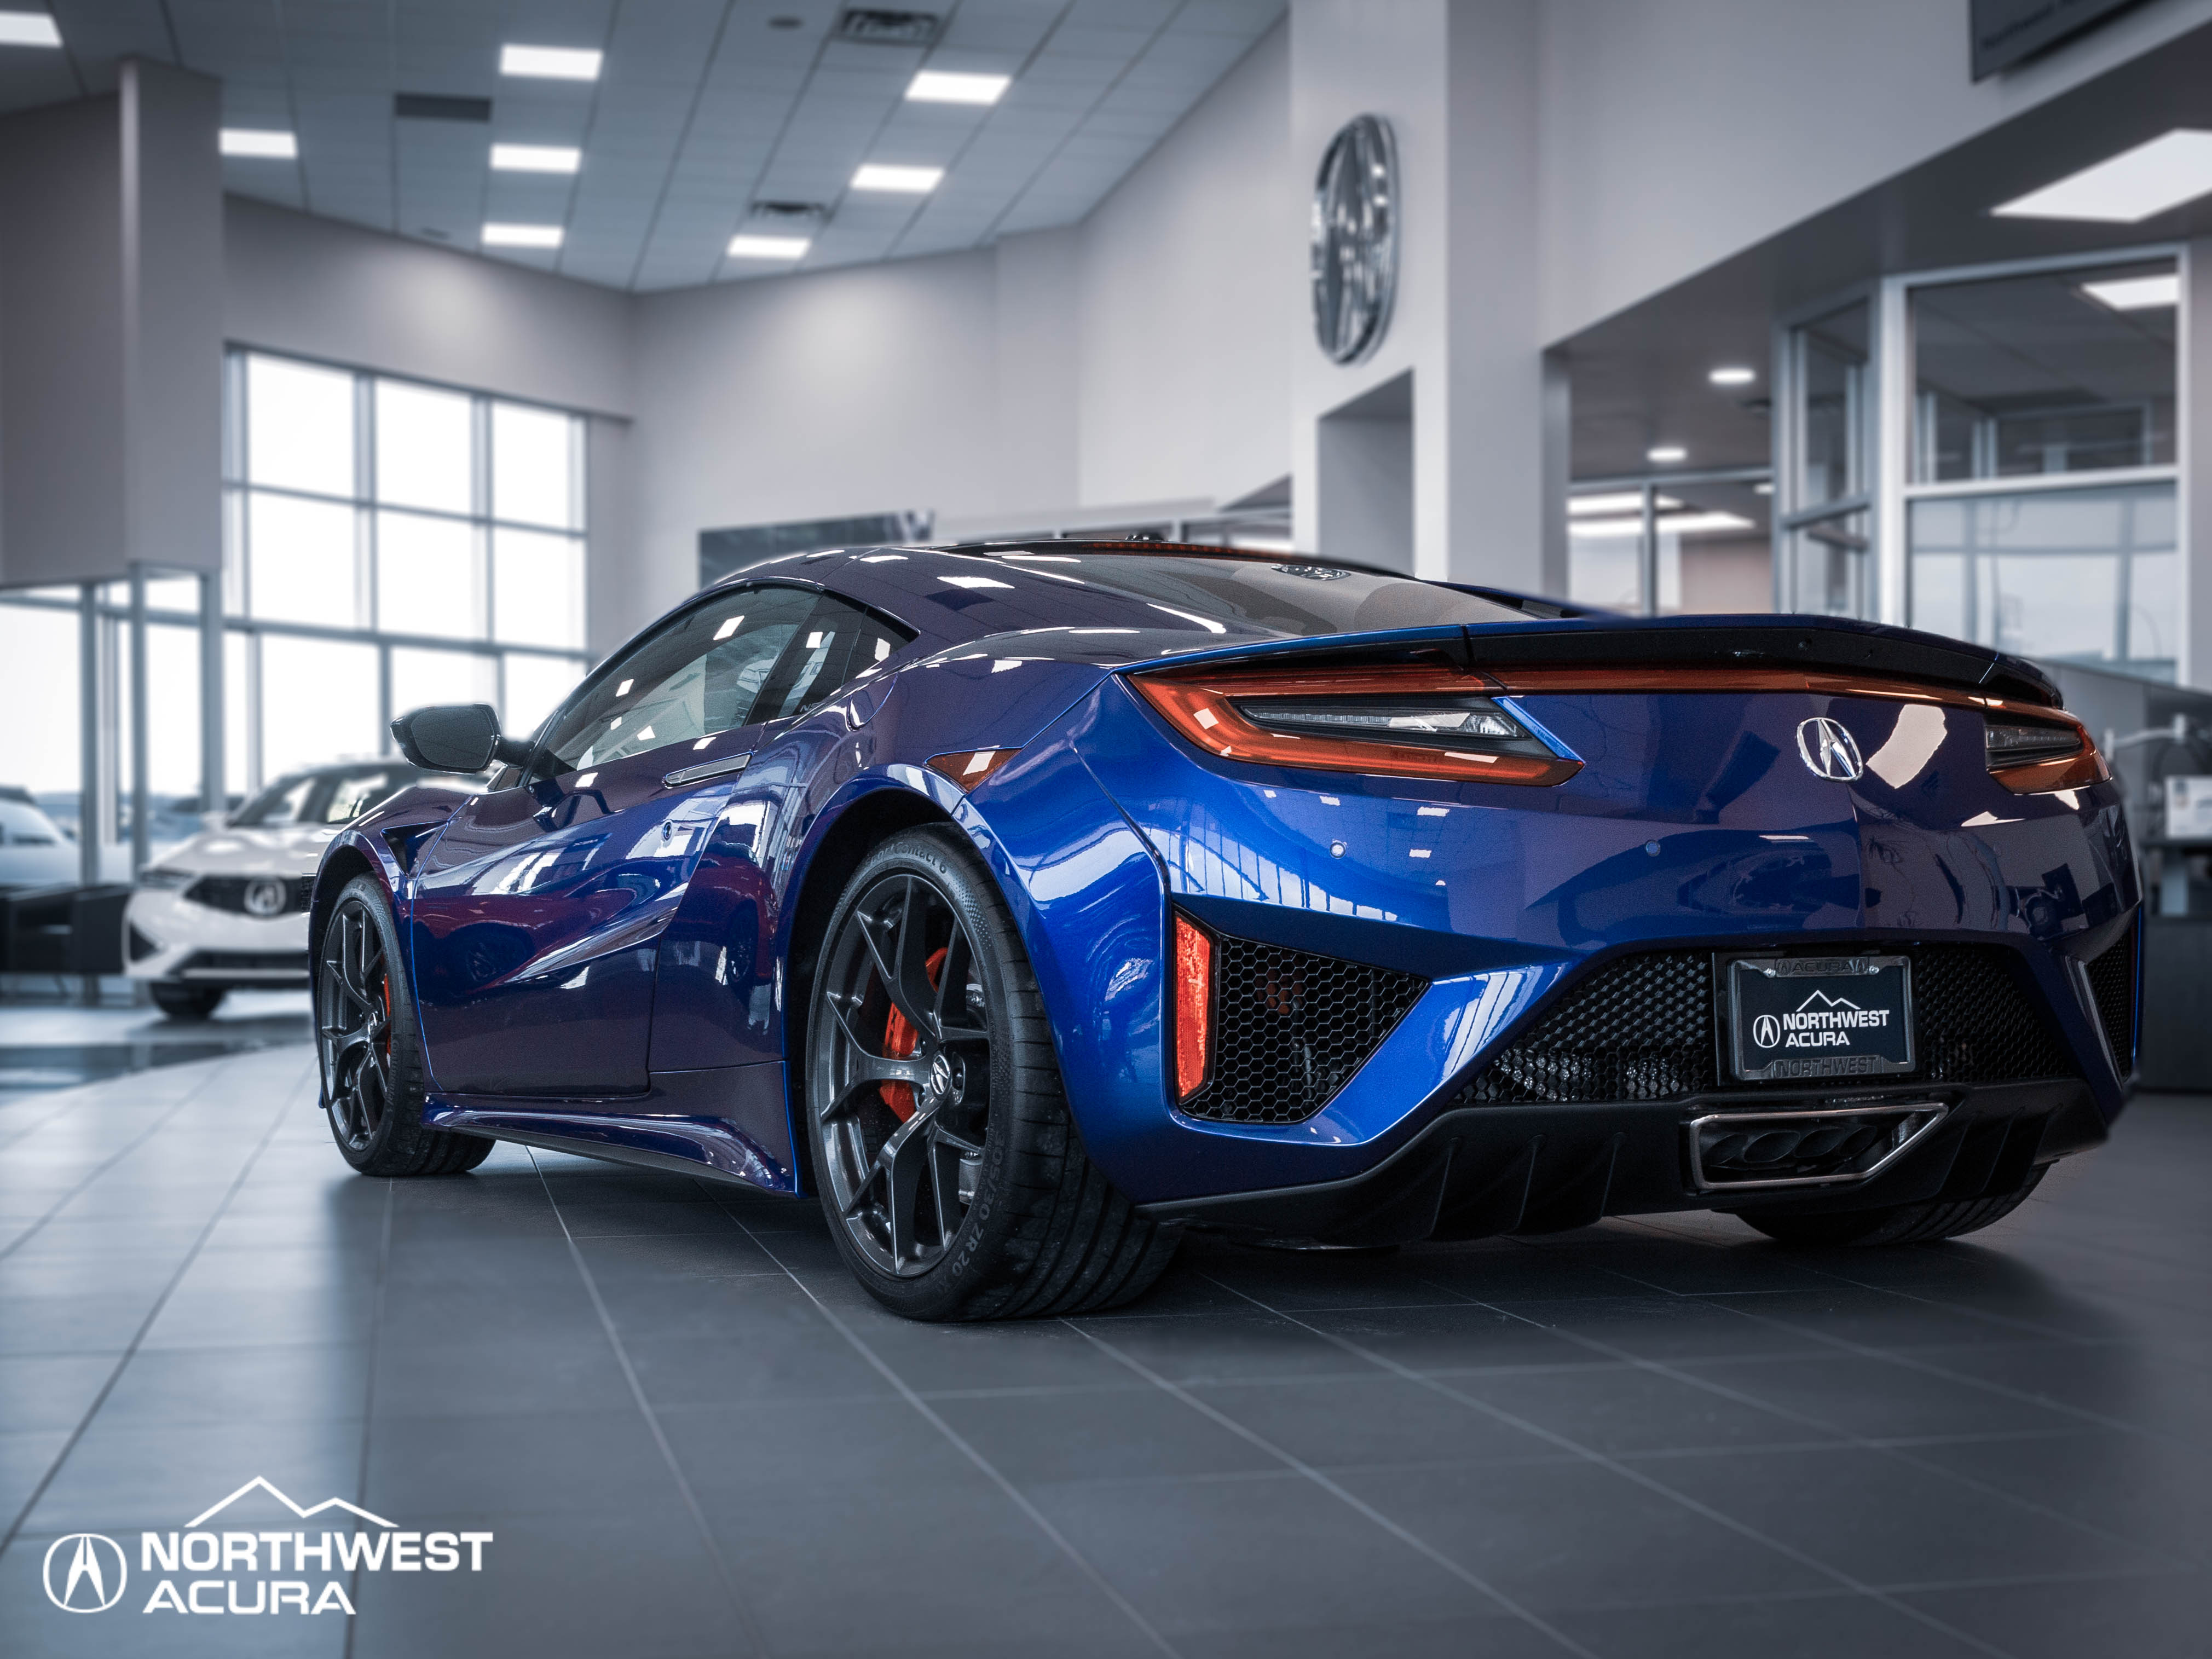 Stock # 1907592 - 2019 Acura NSX Nouvelle Blue